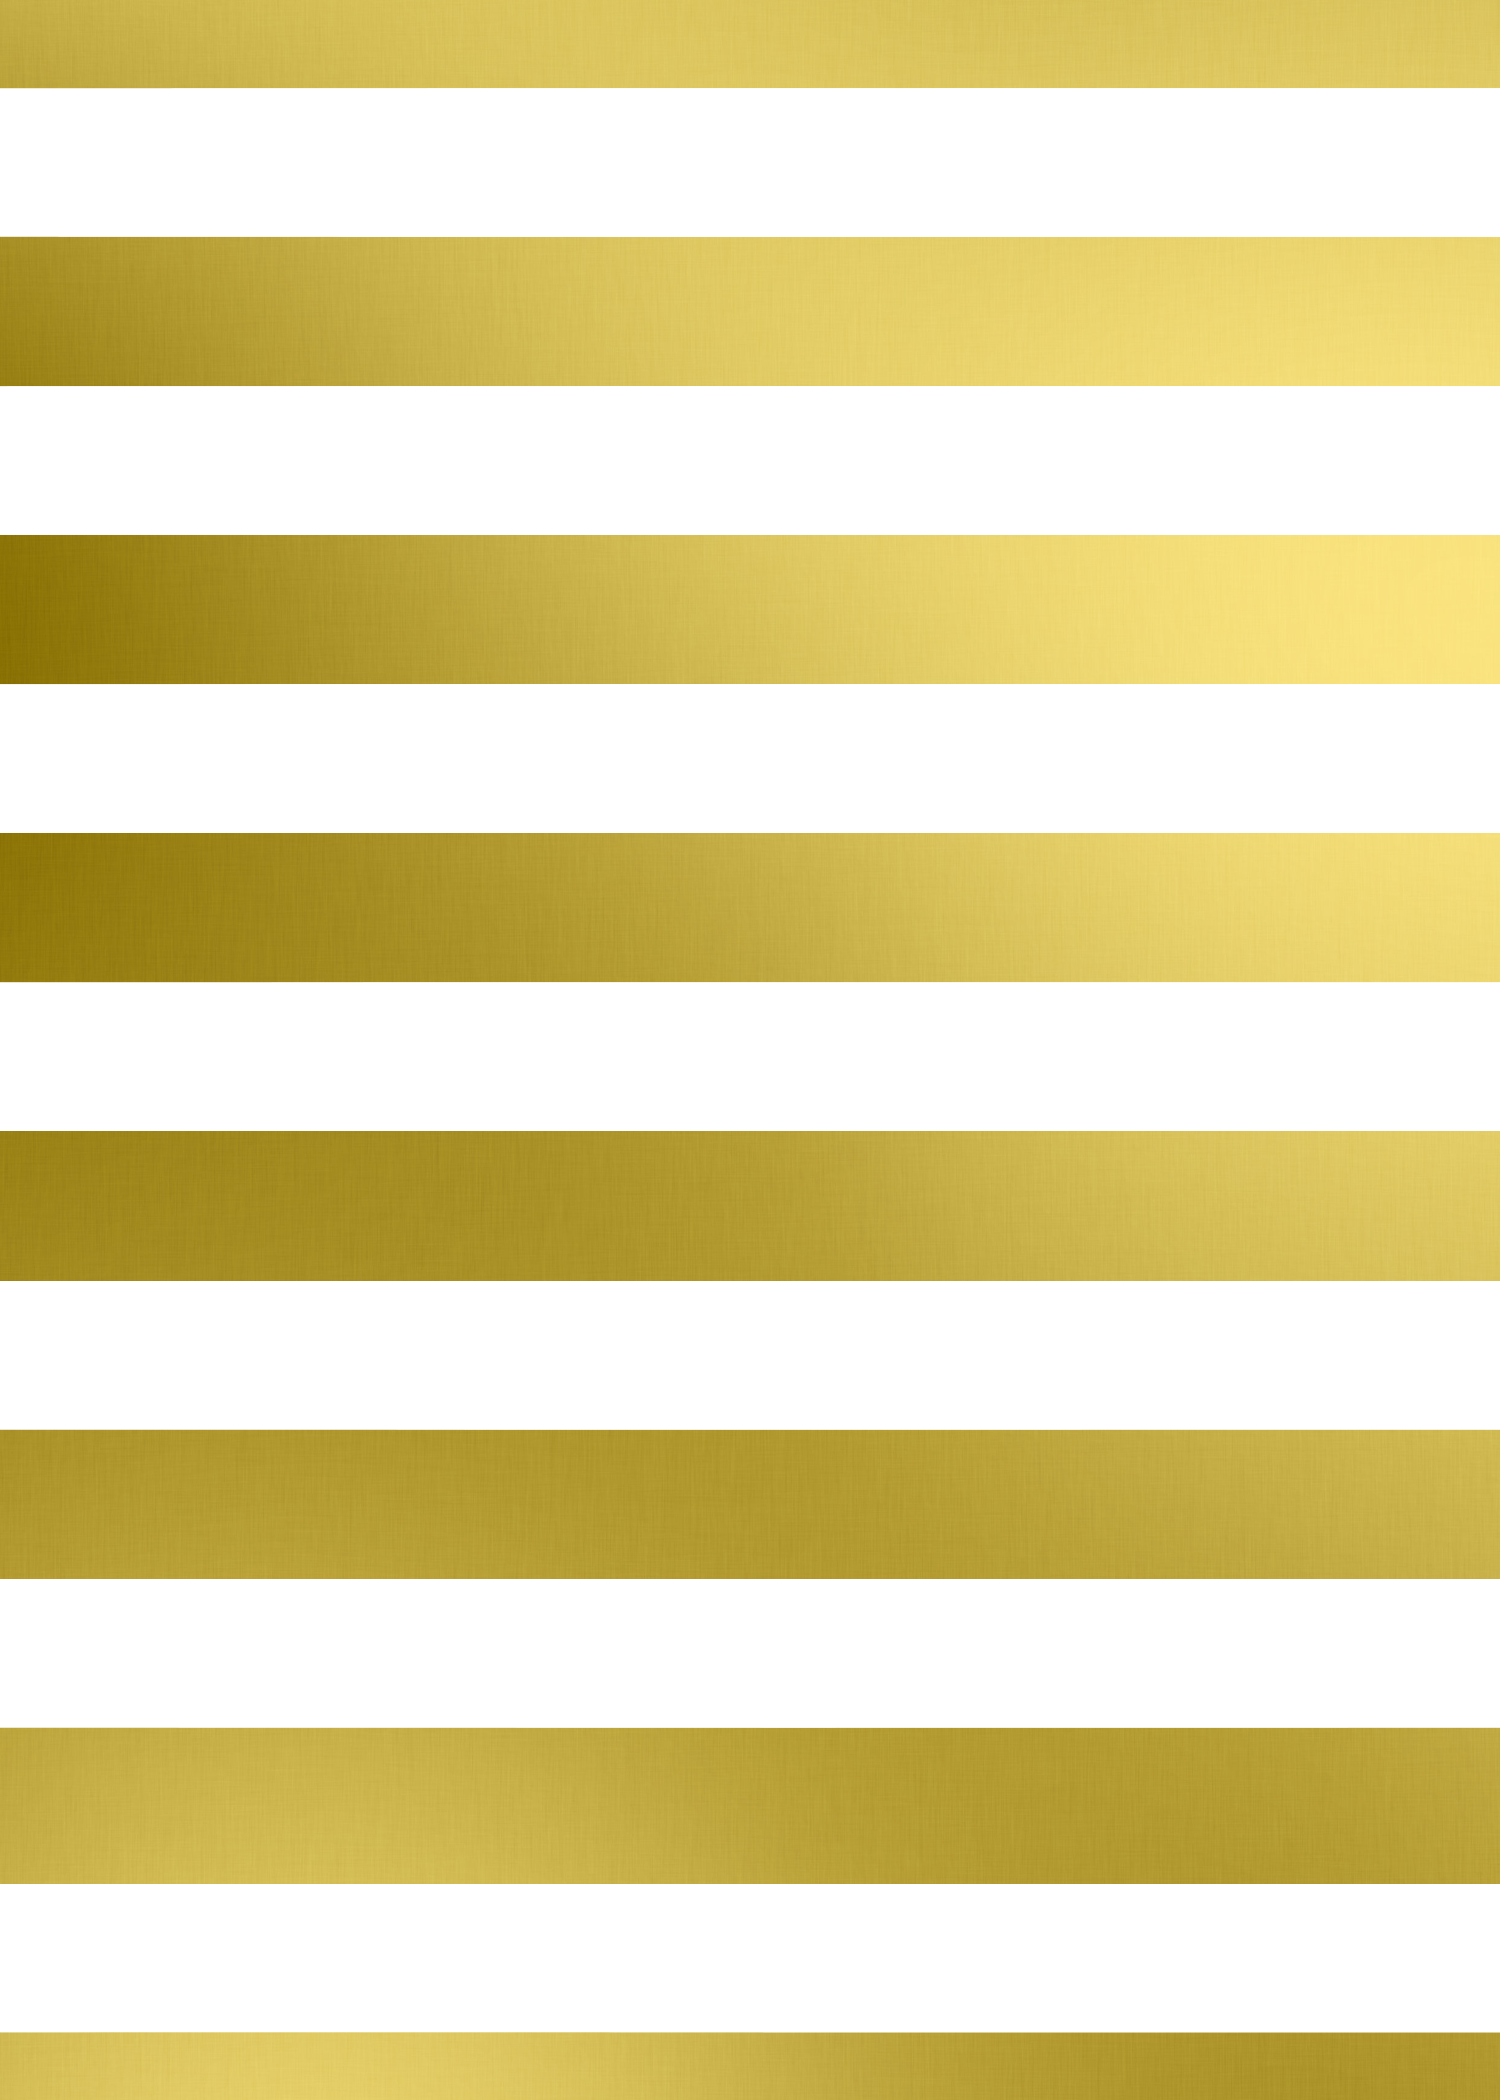 Gold lines png. Images of design background